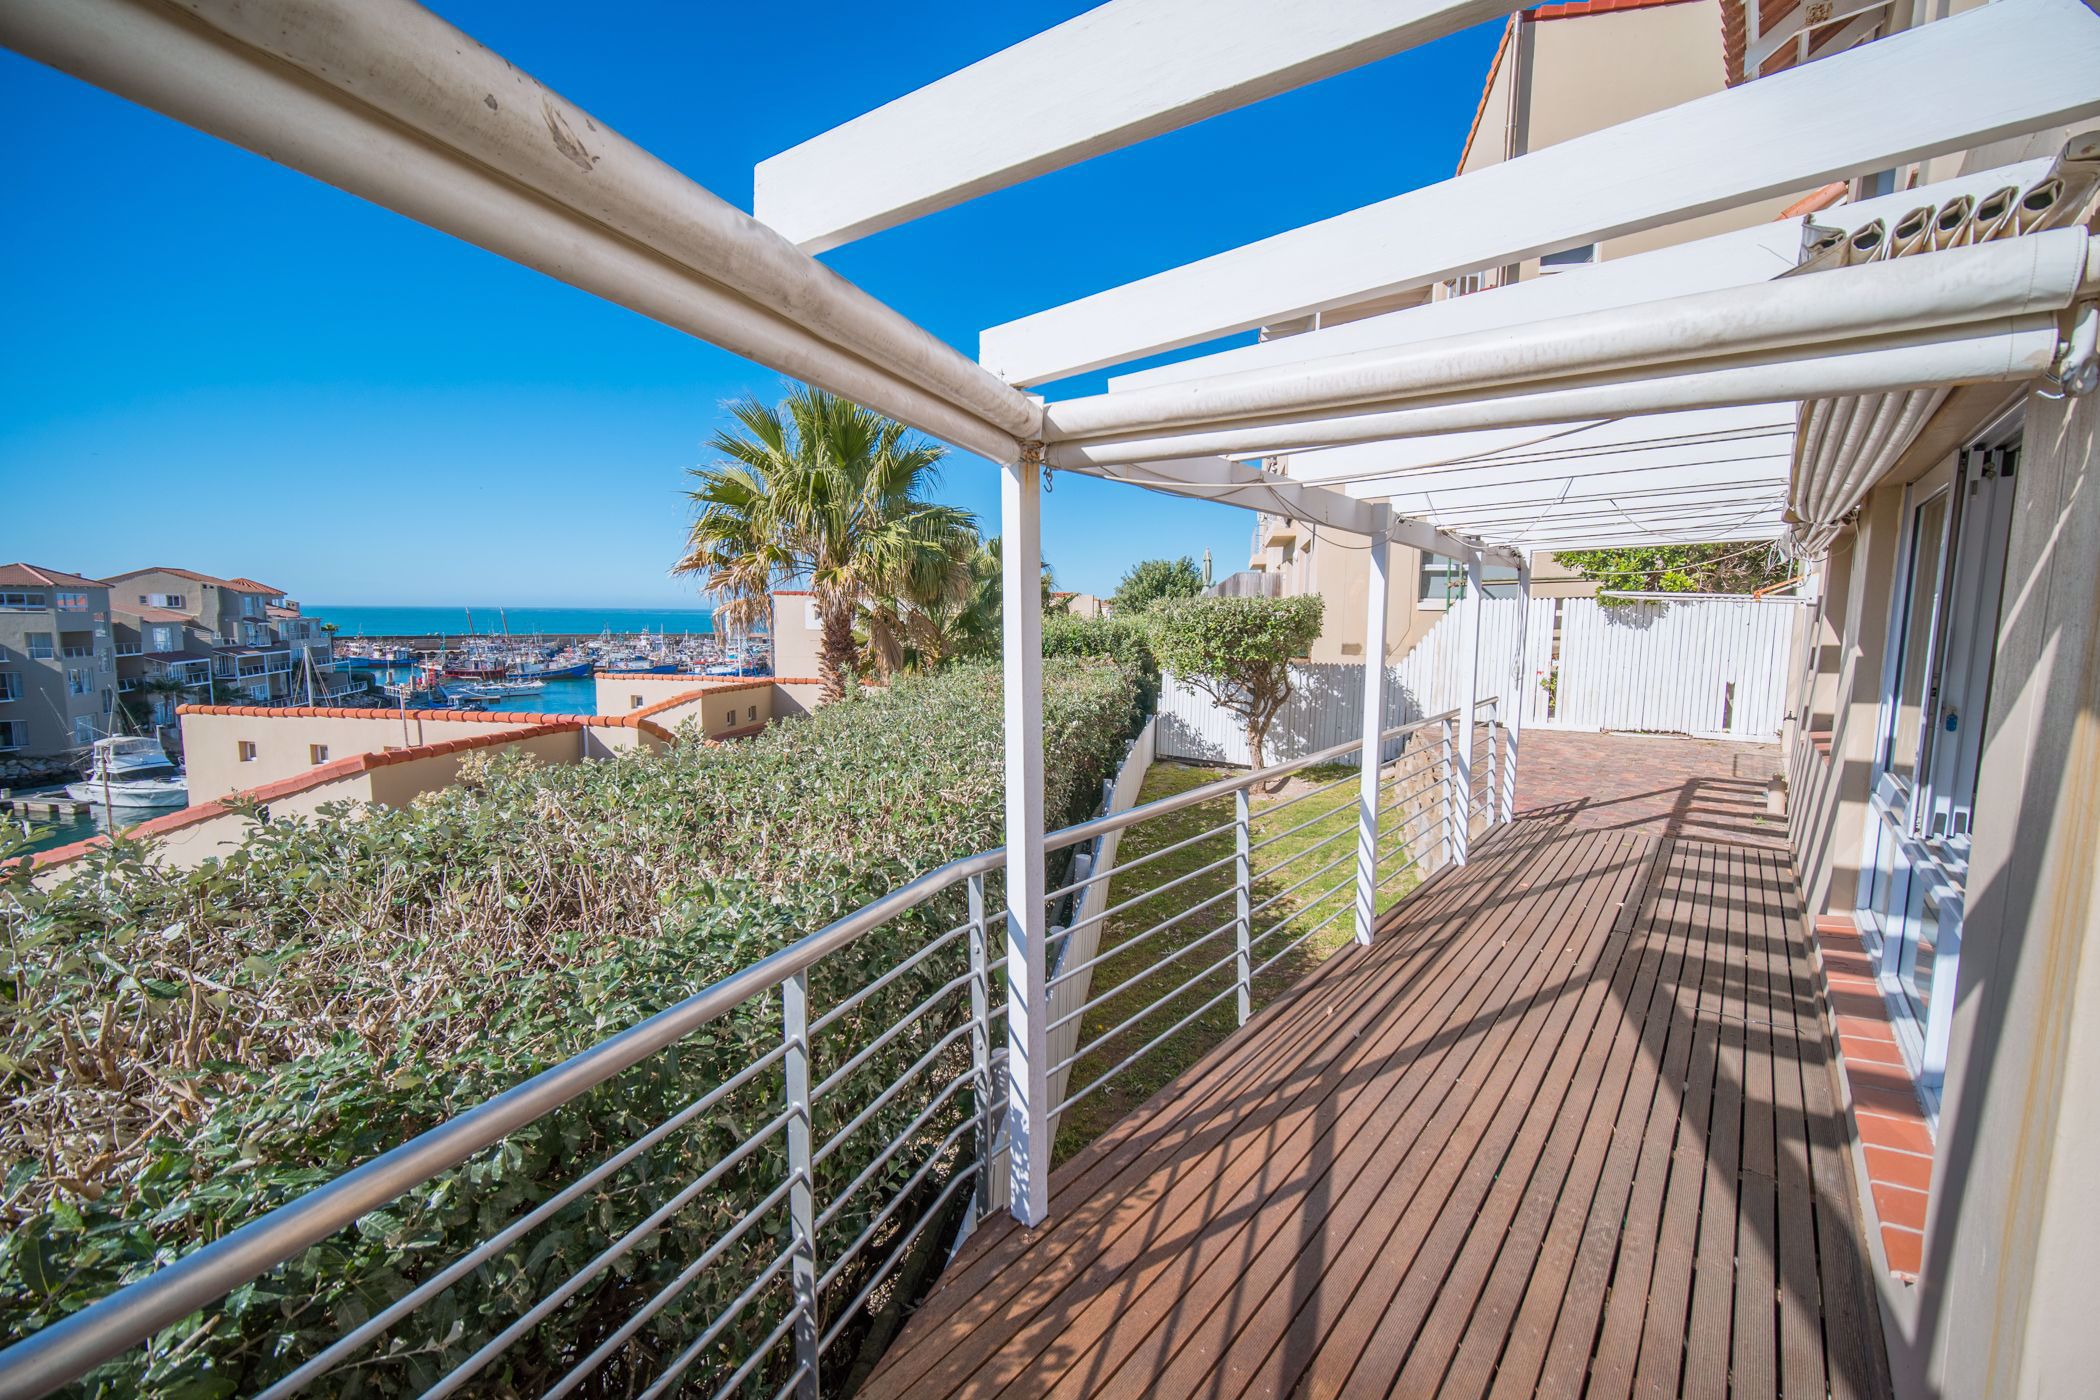 3 bedroom apartment for sale in Port St Francis